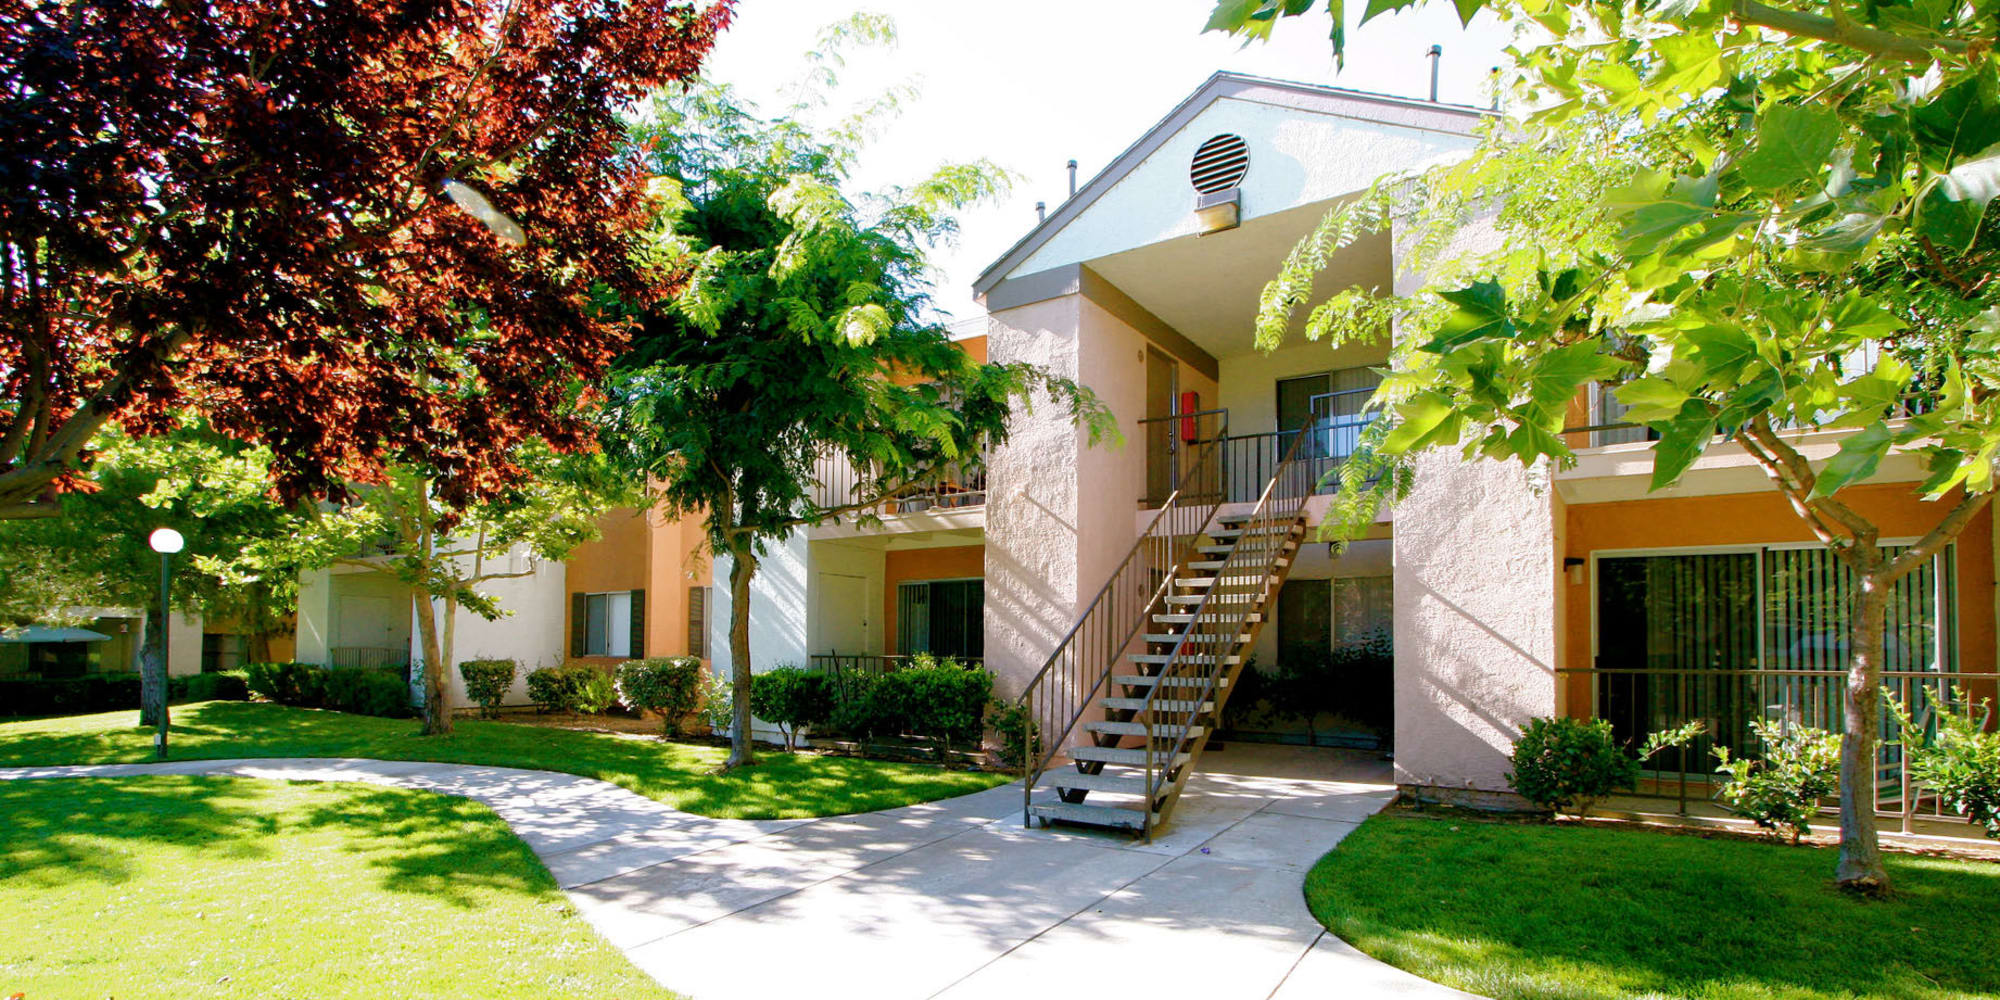 Mature trees and professionally maintained landscaping outside resident buildings at Mountain Vista in Victorville, California